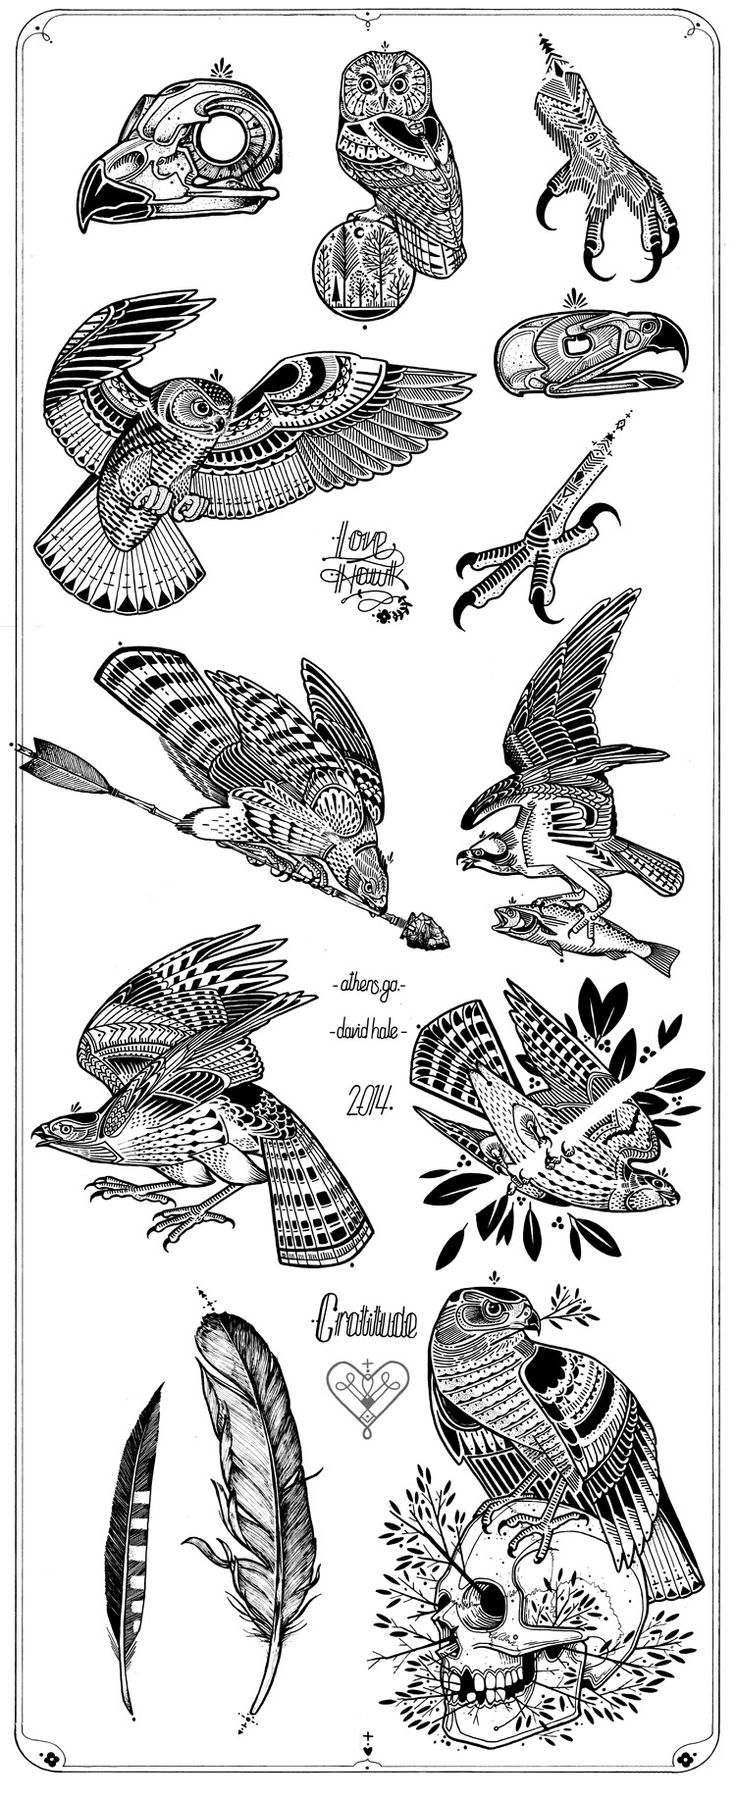 David Hale | Tattoo Design of the Month Love Hawk | #tattoo #style #hawktattoo #davidhale #lovehawk